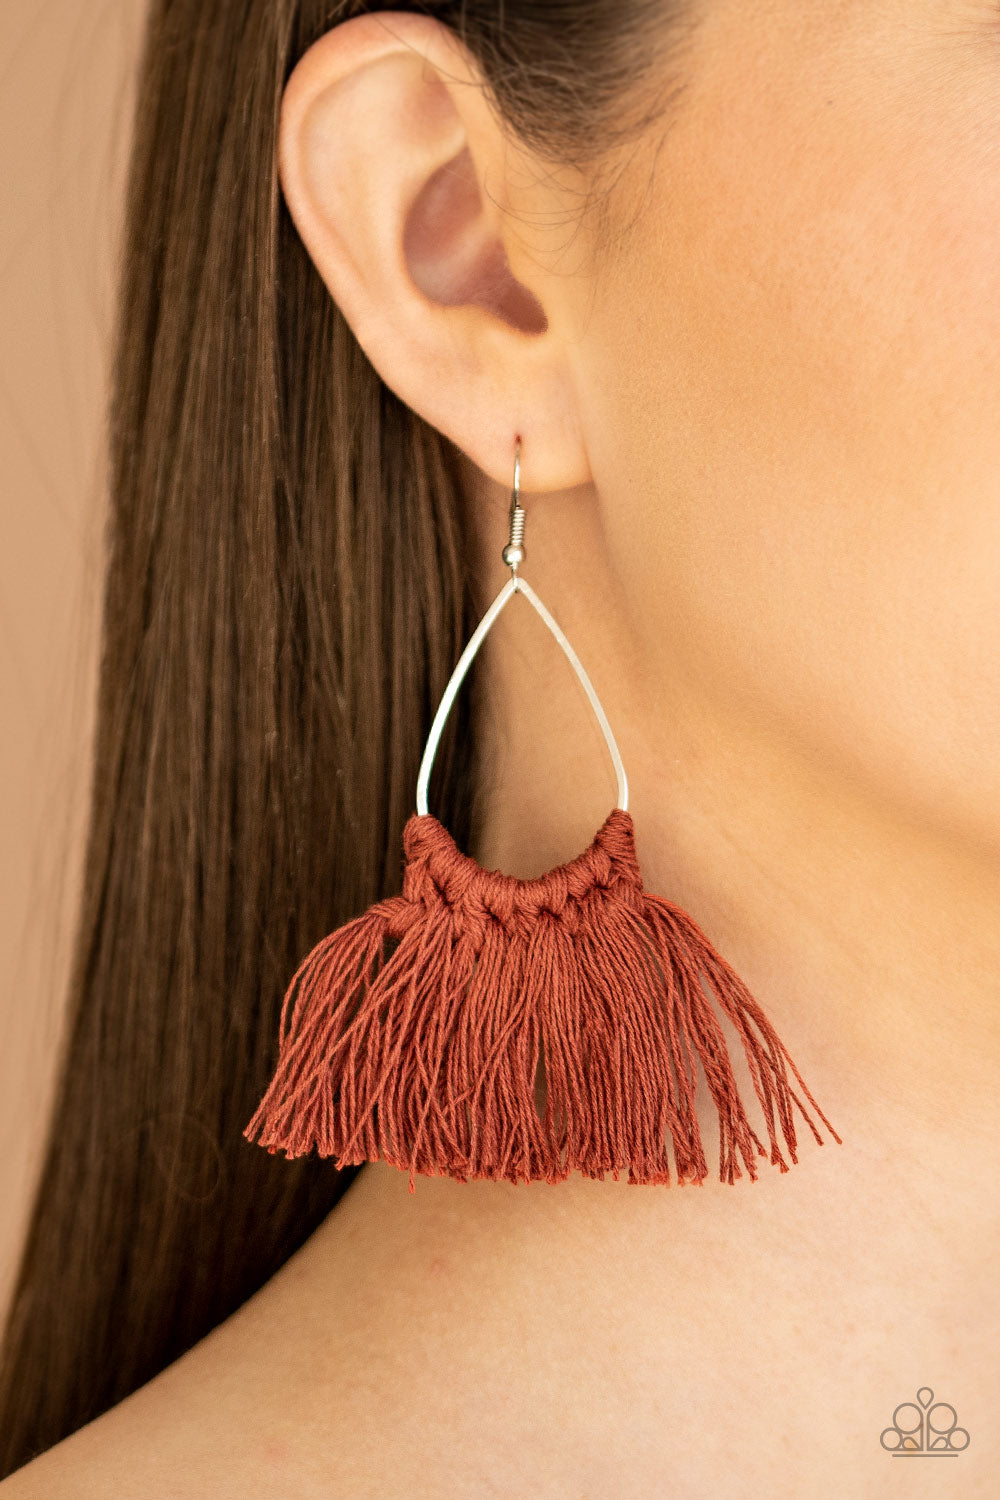 Paparazzi Jewelry & Accessories - Tassel Treat - Brown Earrings. Bling By Titia Boutique